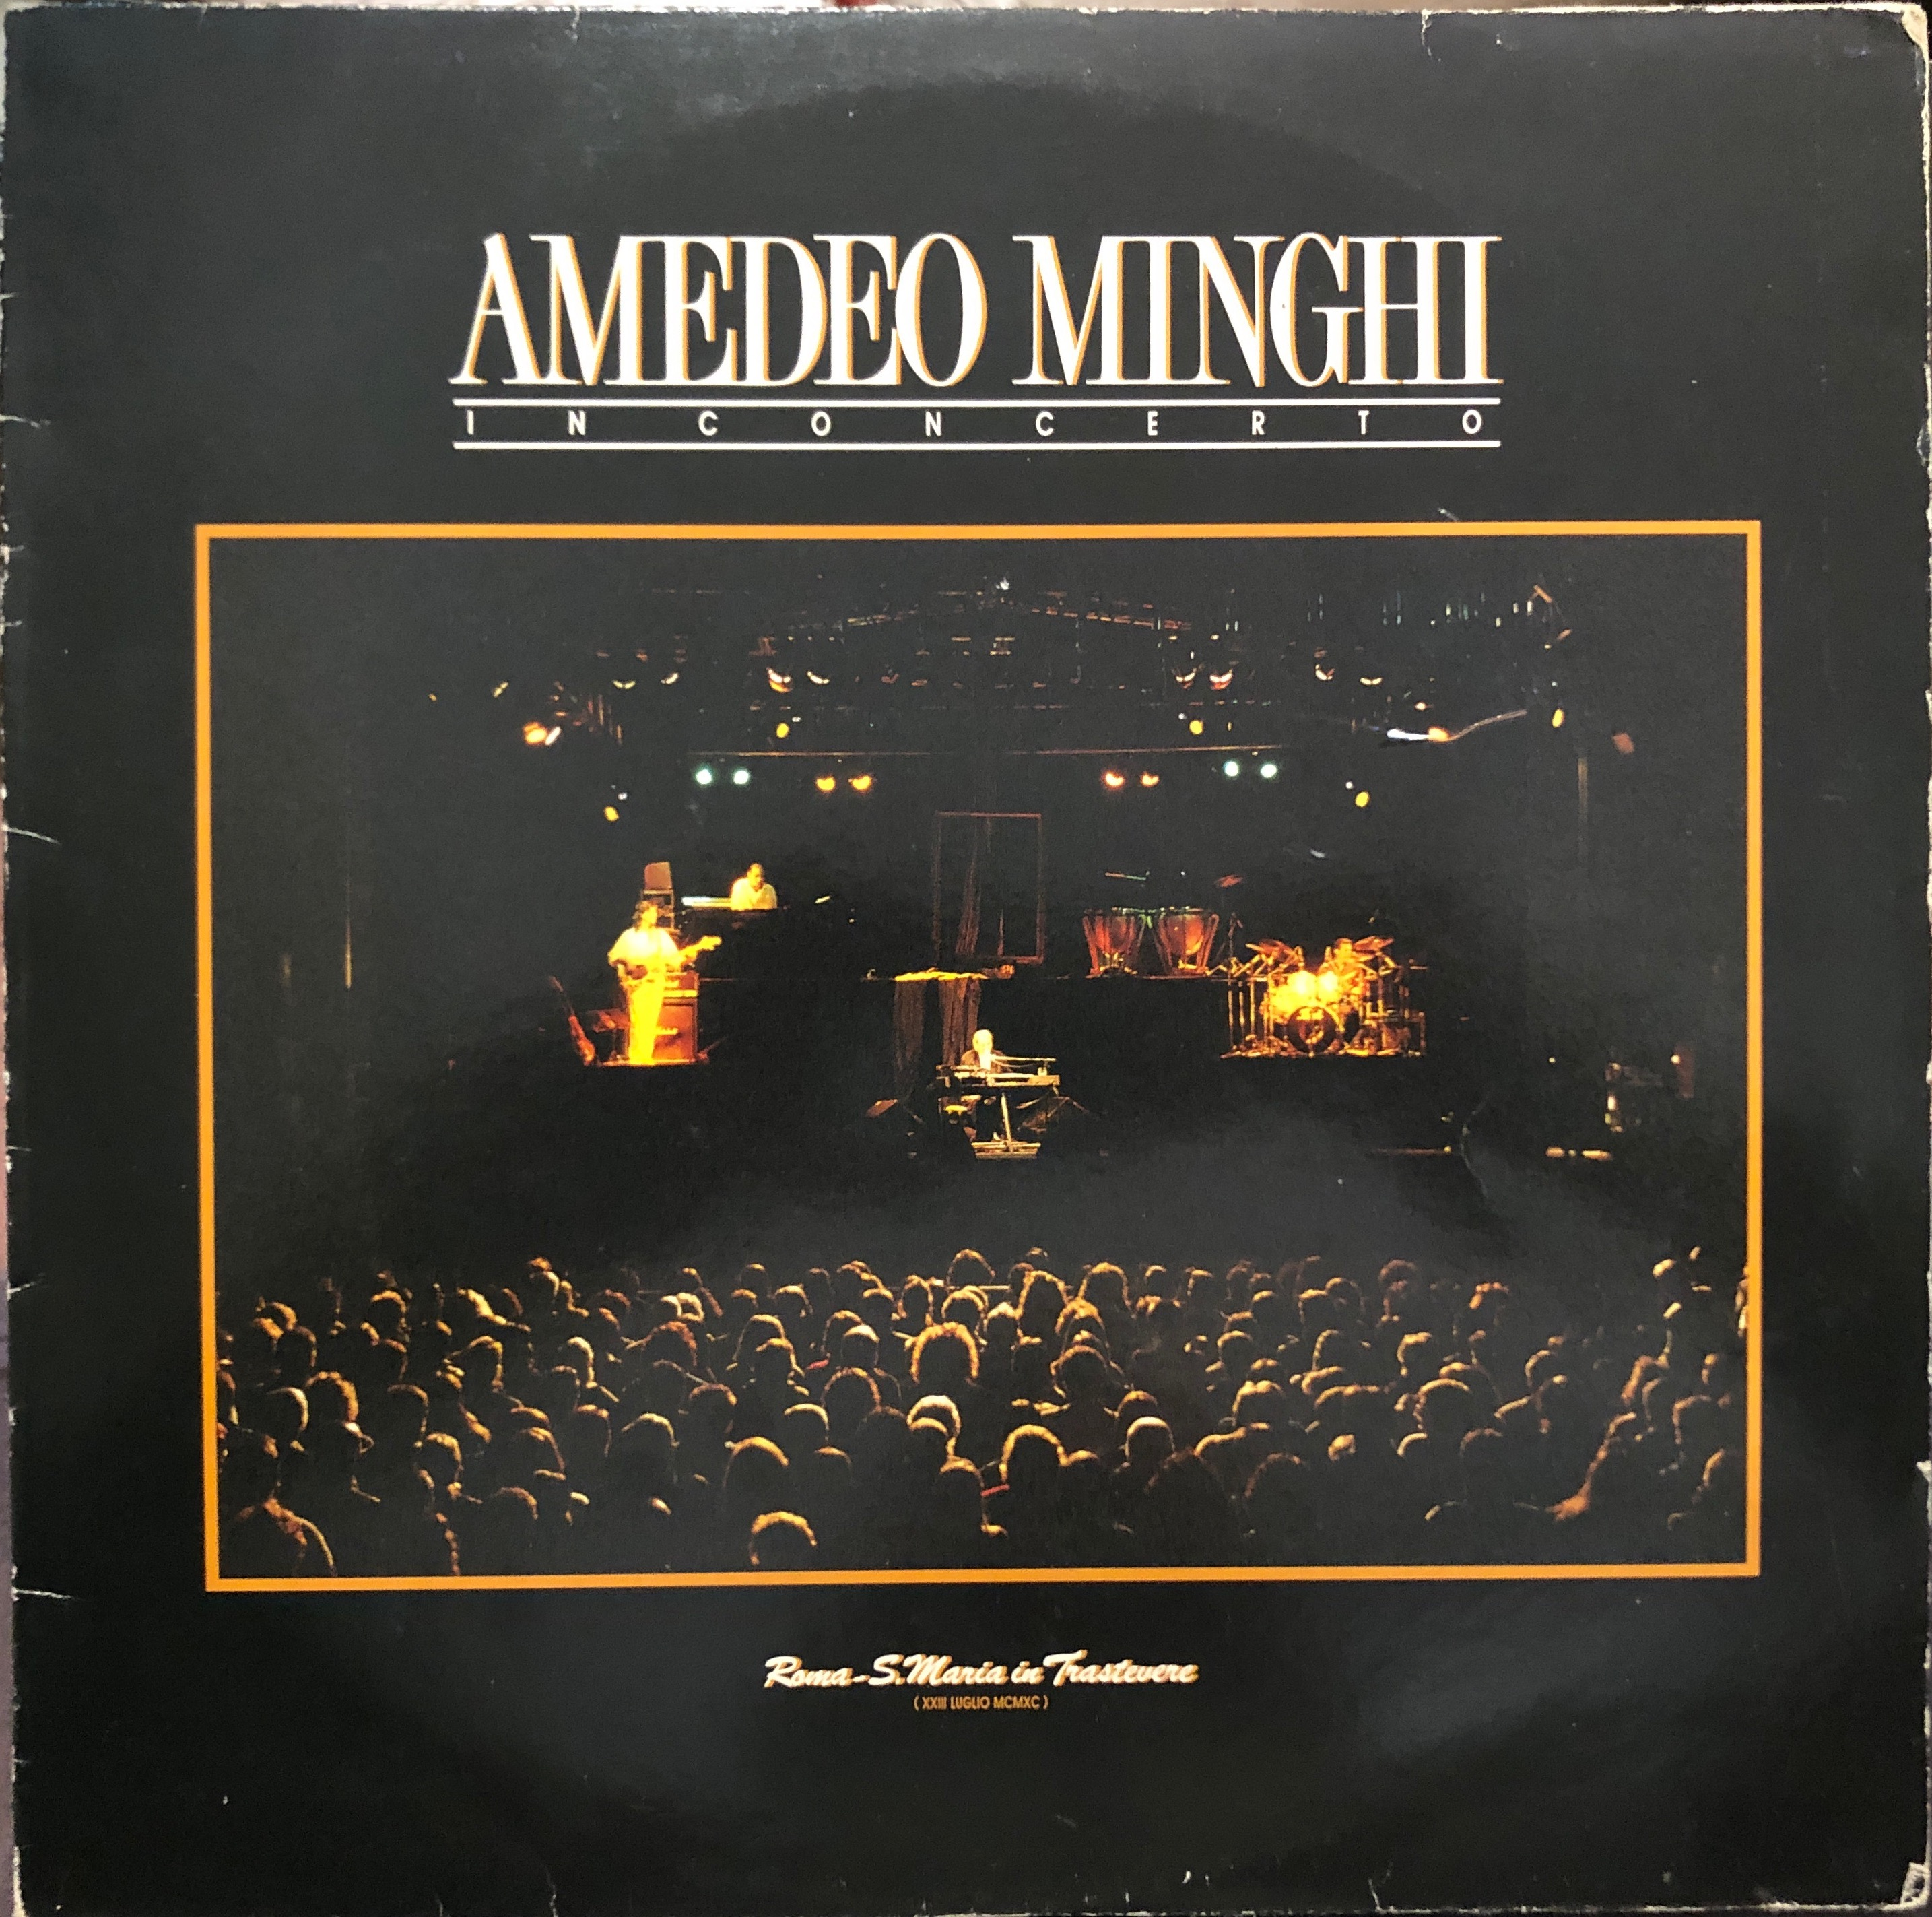 Amedeo Minghi - In concerto